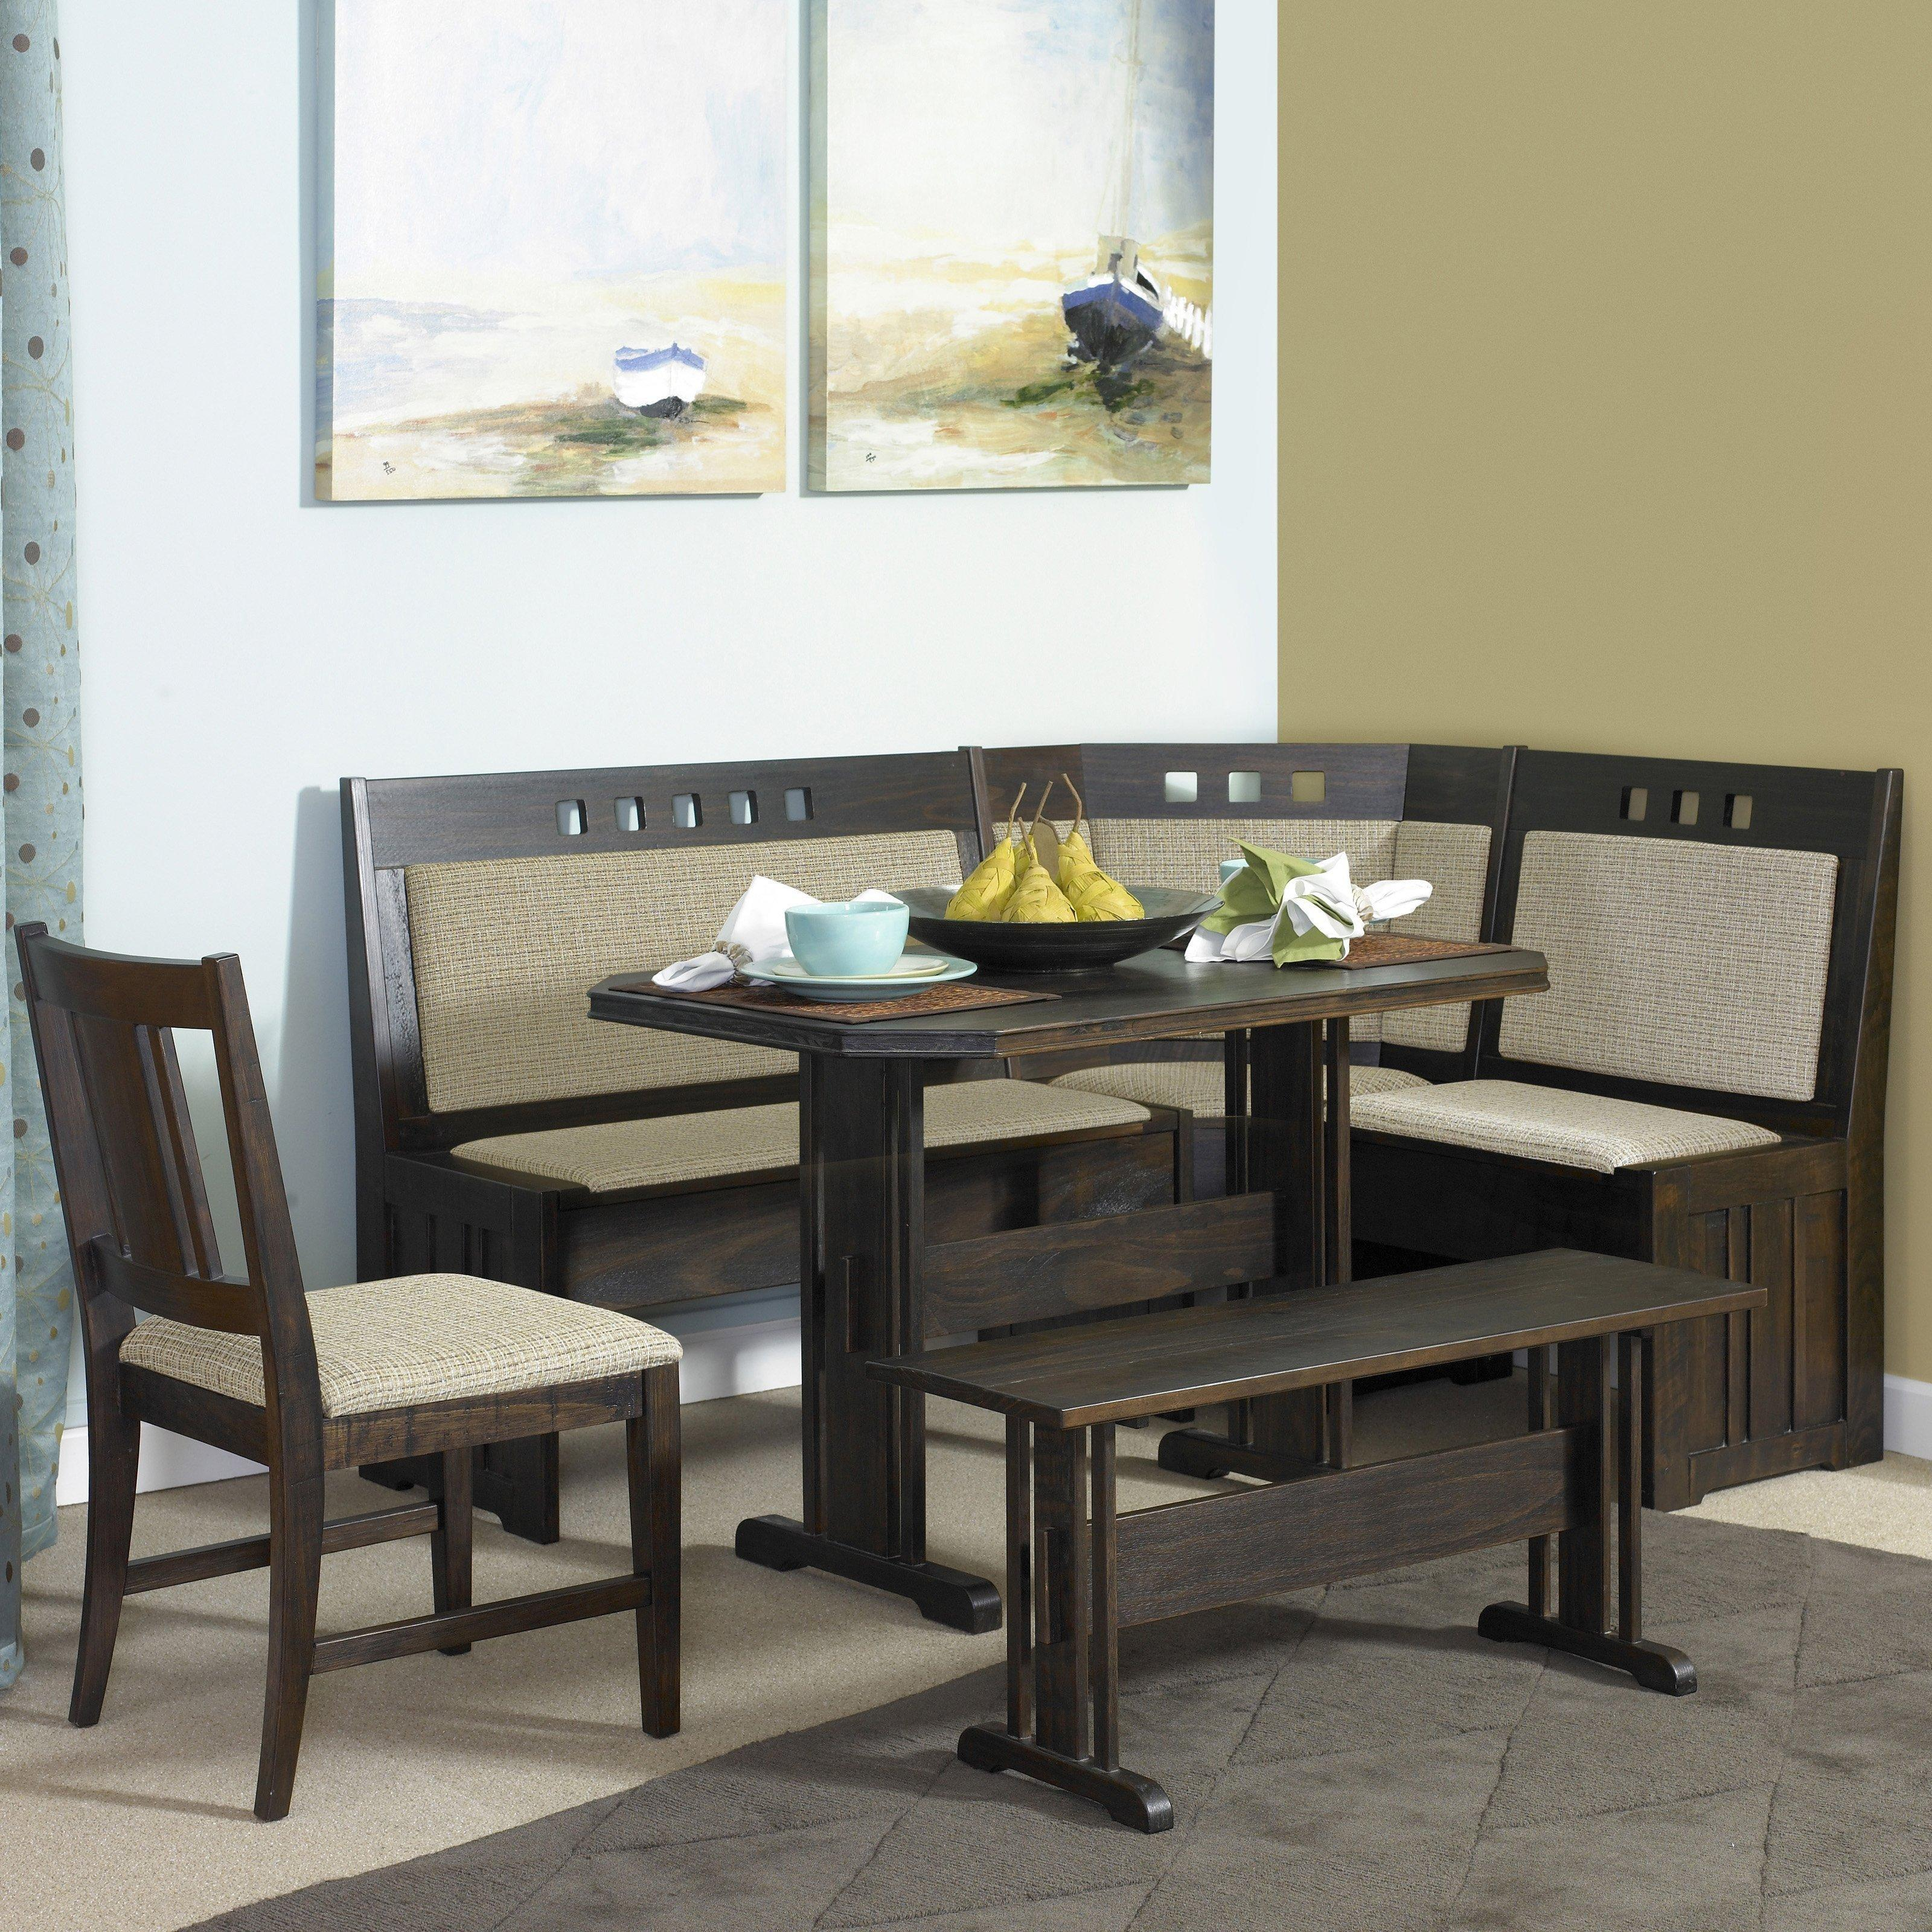 Delightful Dining Table Banquette Seating Kitchen